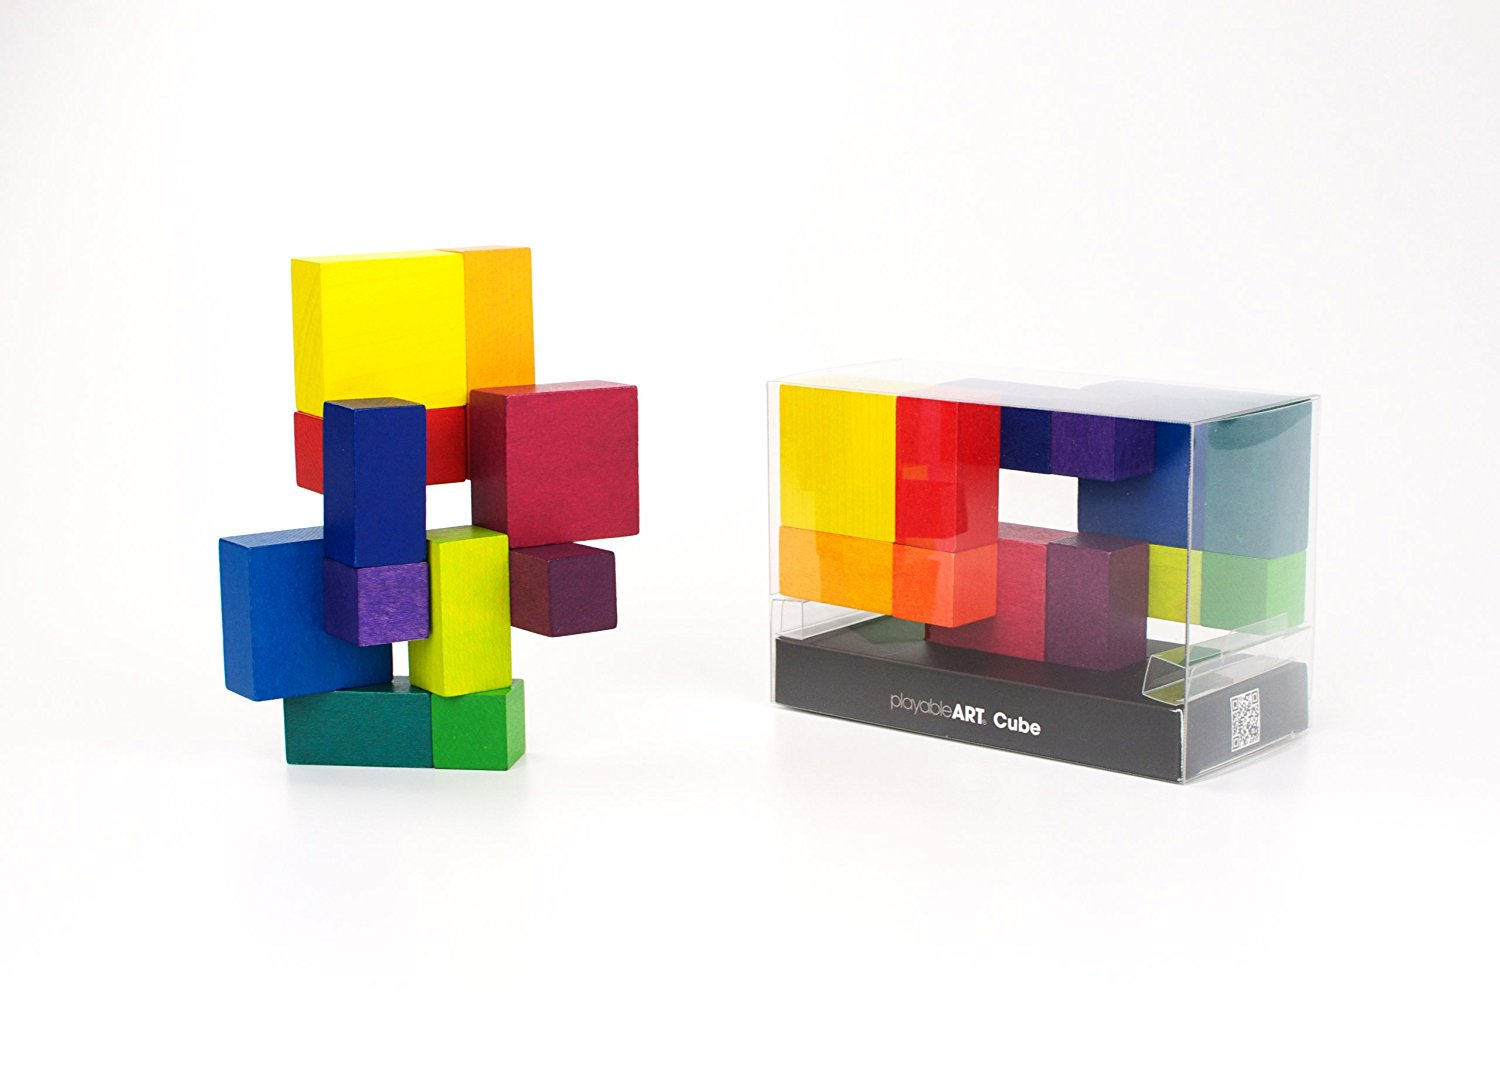 Playable Art Cube - Compact